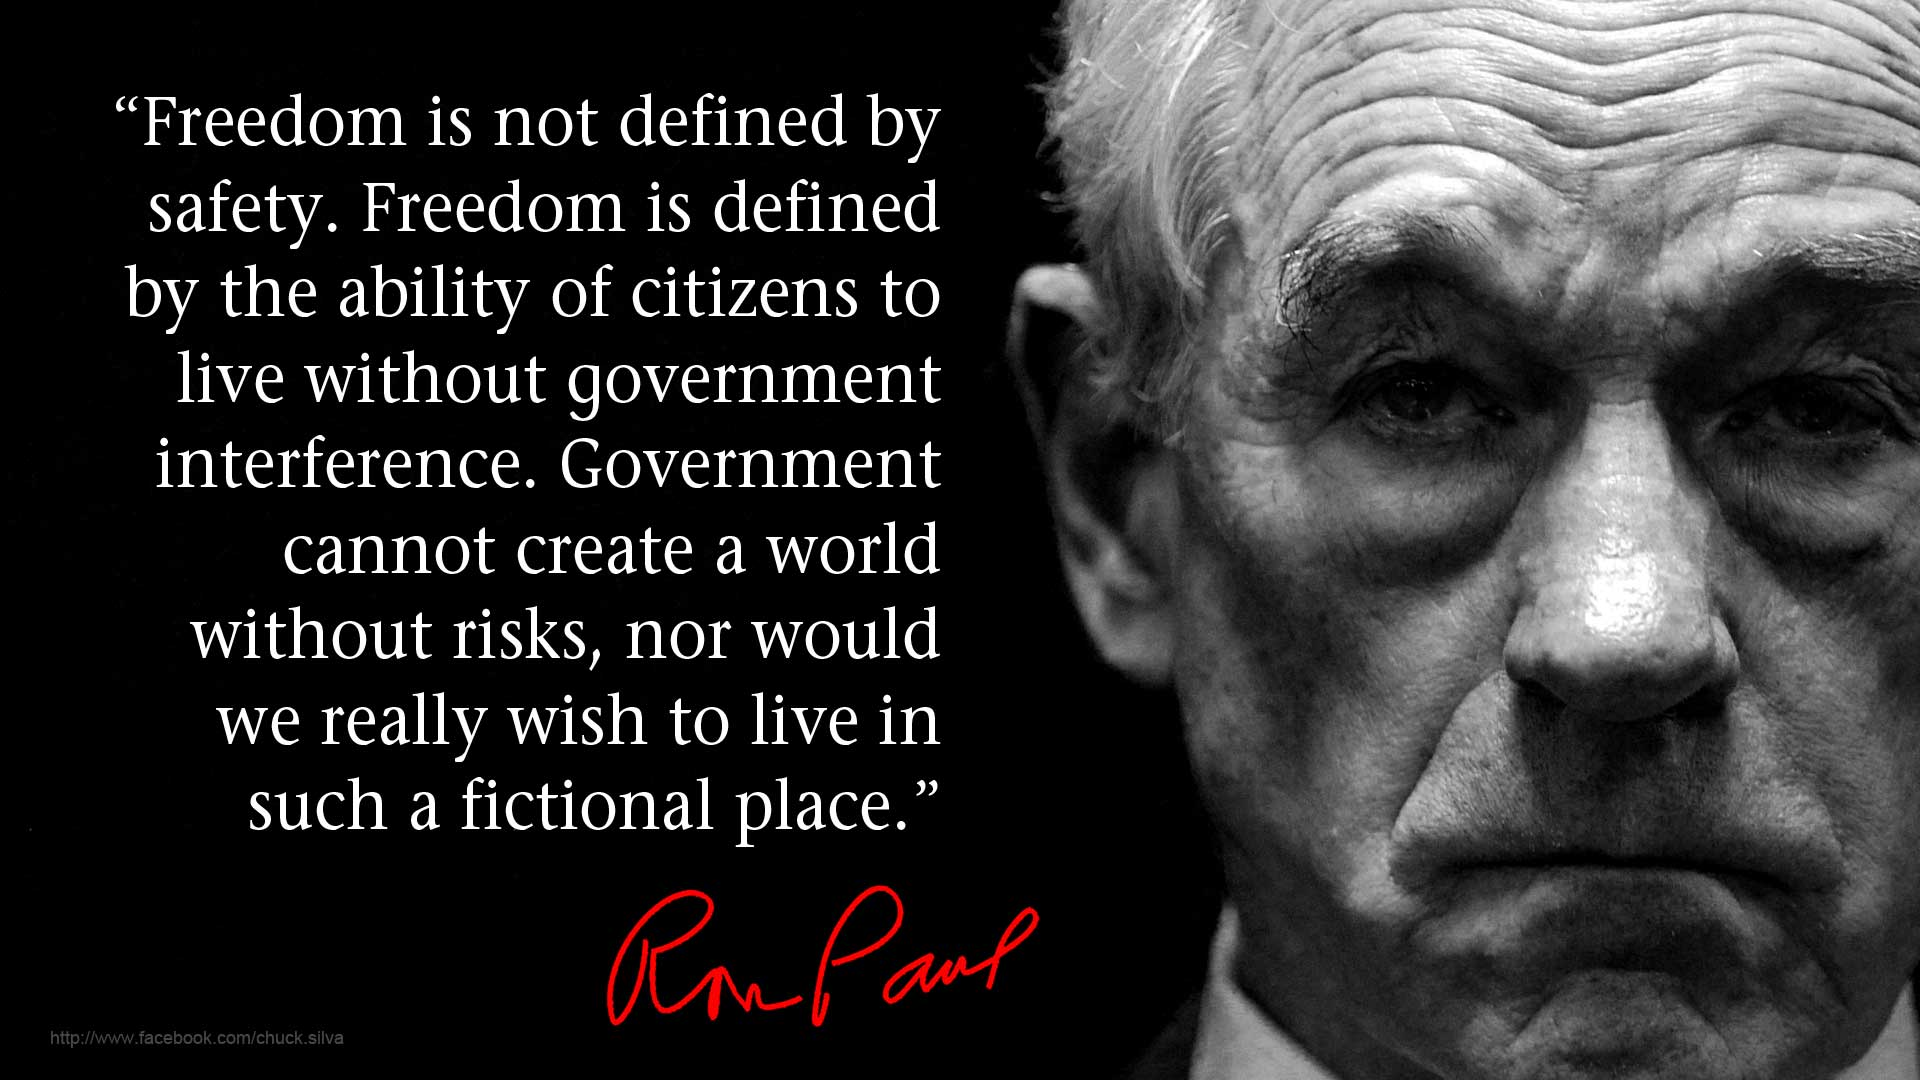 Harvey Specter Quotes Hd Wallpaper Ron Paul Freedom Vs Safety Full Hd Wallpaper And